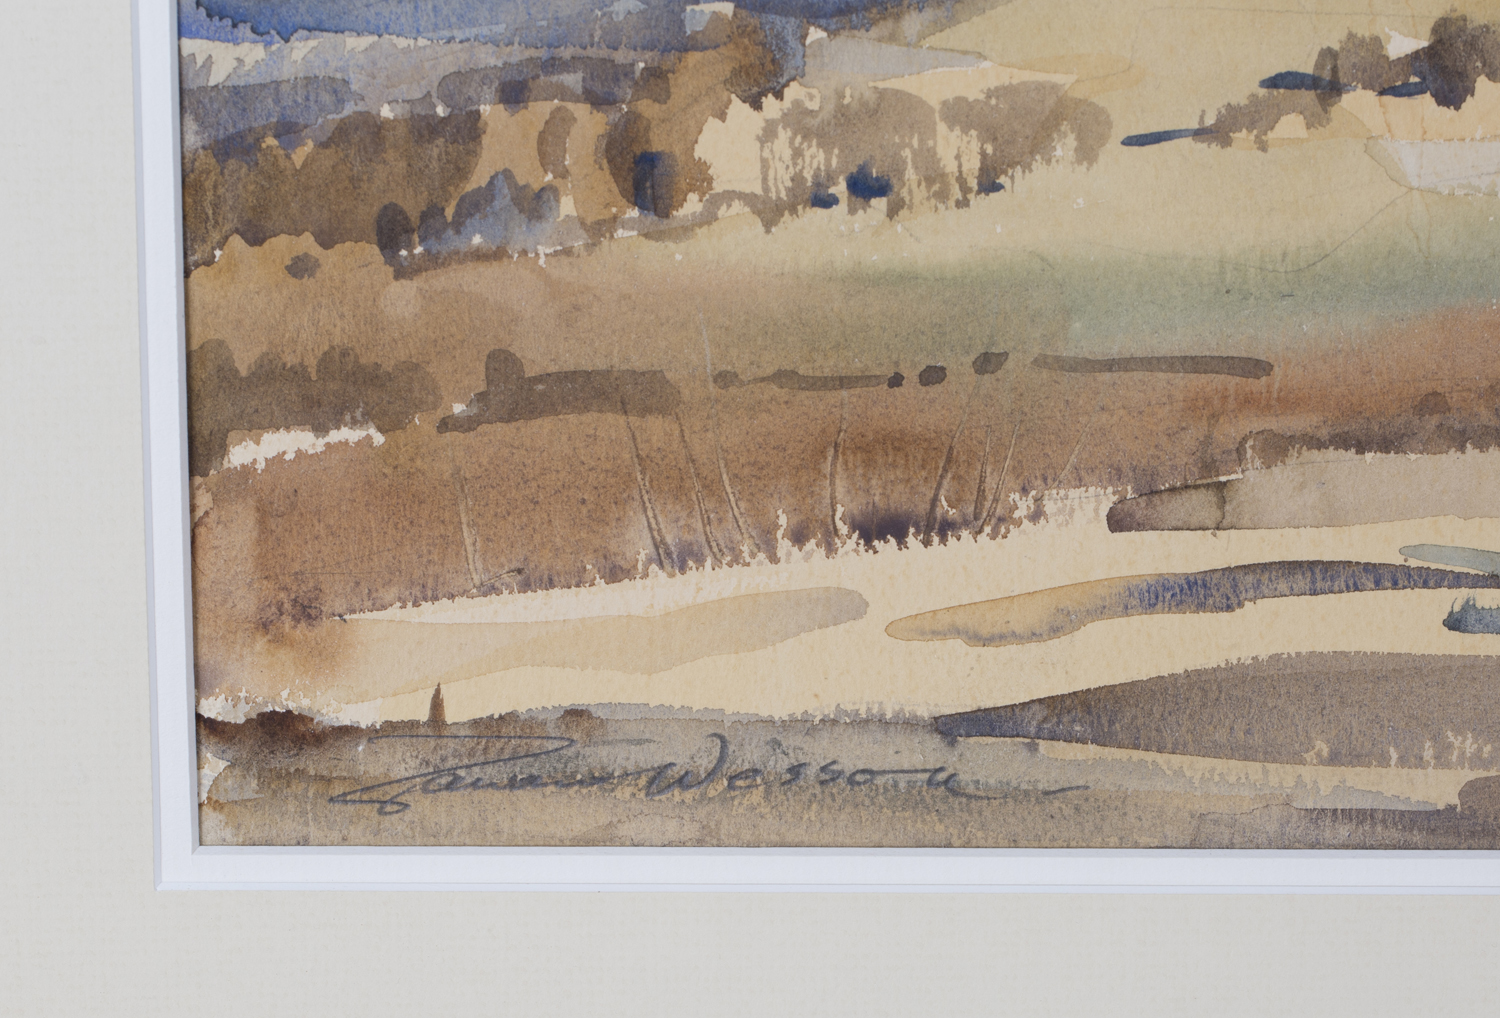 Lot 9 - Edward Wesson - View of a Distant Windmill, 20th century watercolour, signed in pencil, 31cm x 49.